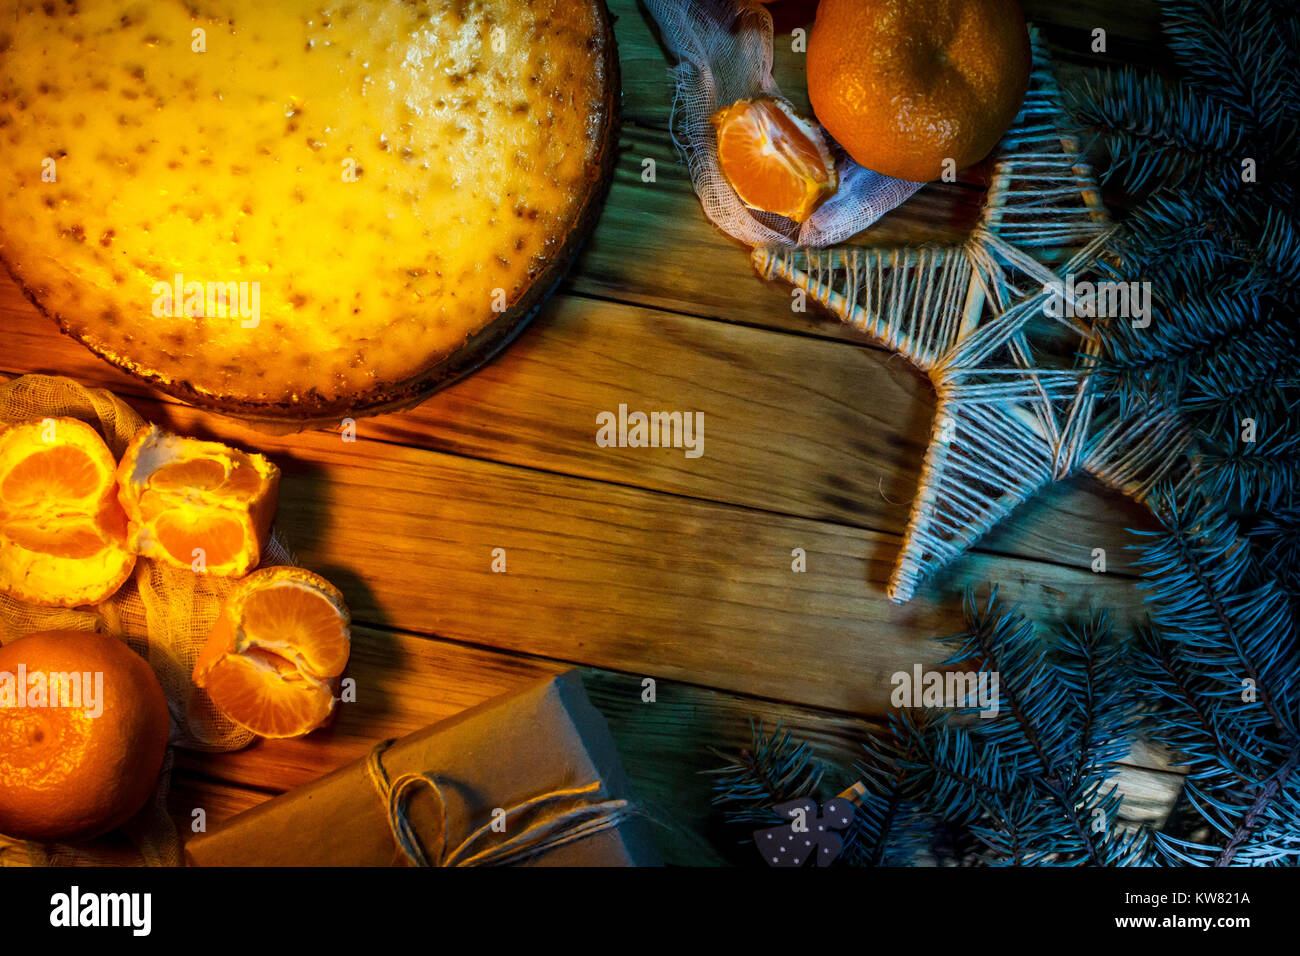 Cheese cake against wooden background with oranges, gift box and christmas decoration. Stock Photo